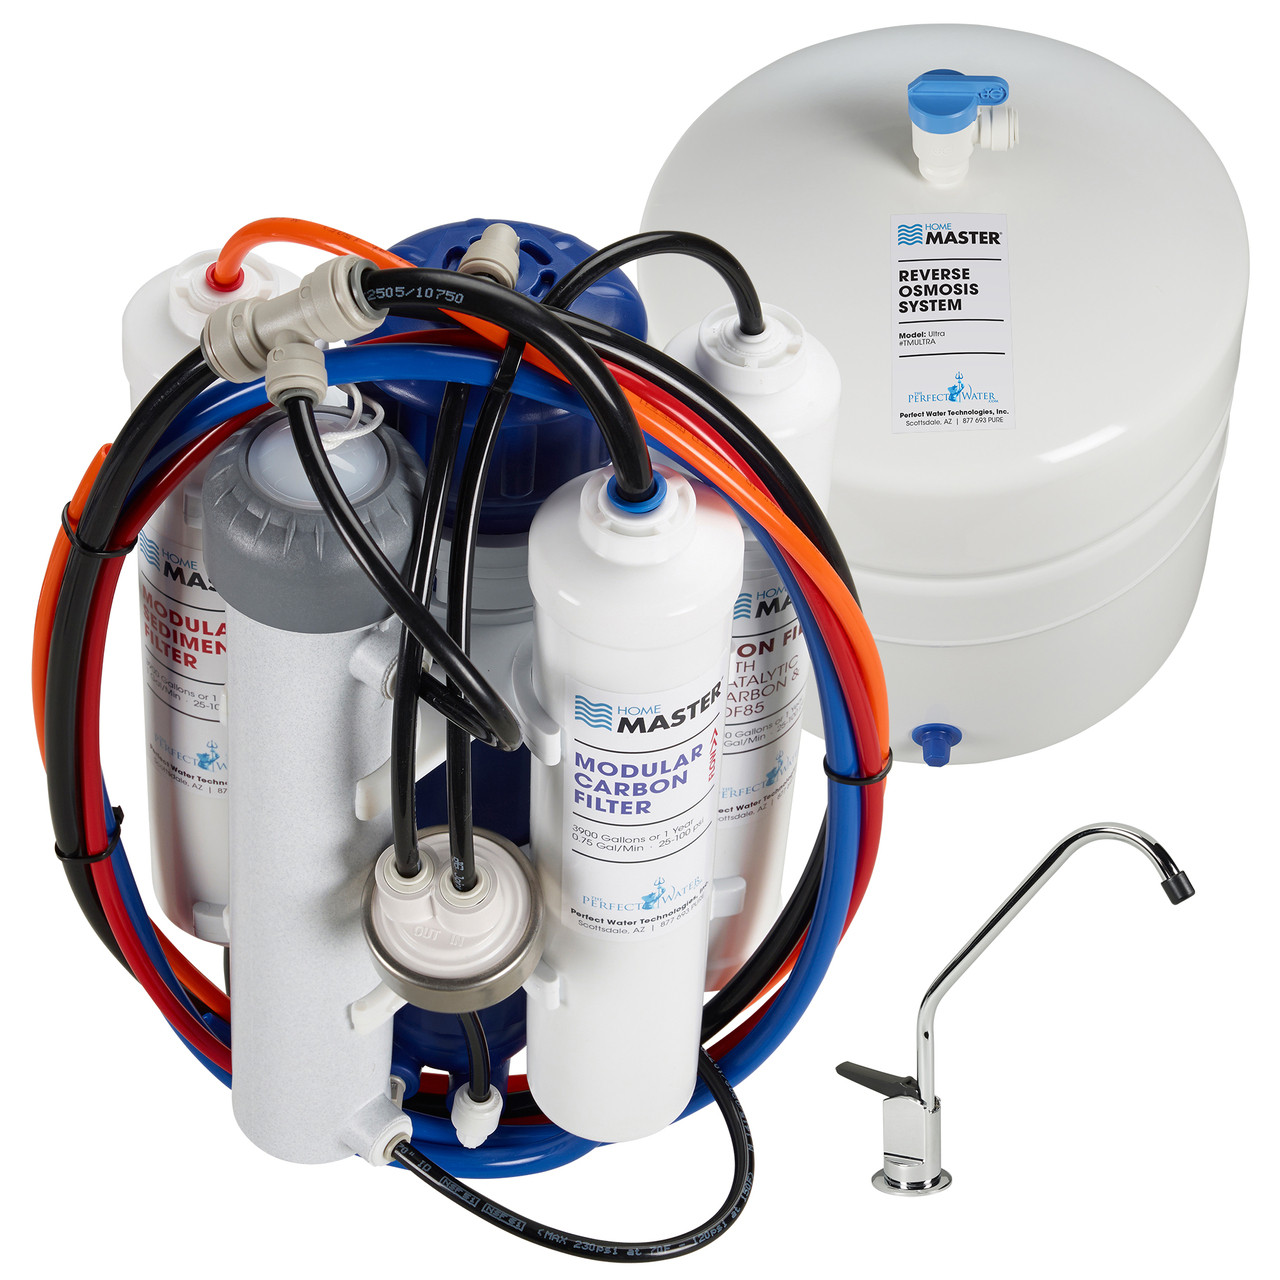 Home Water Filter System Home Master Ultra Reverse Osmosis Water Filtration System